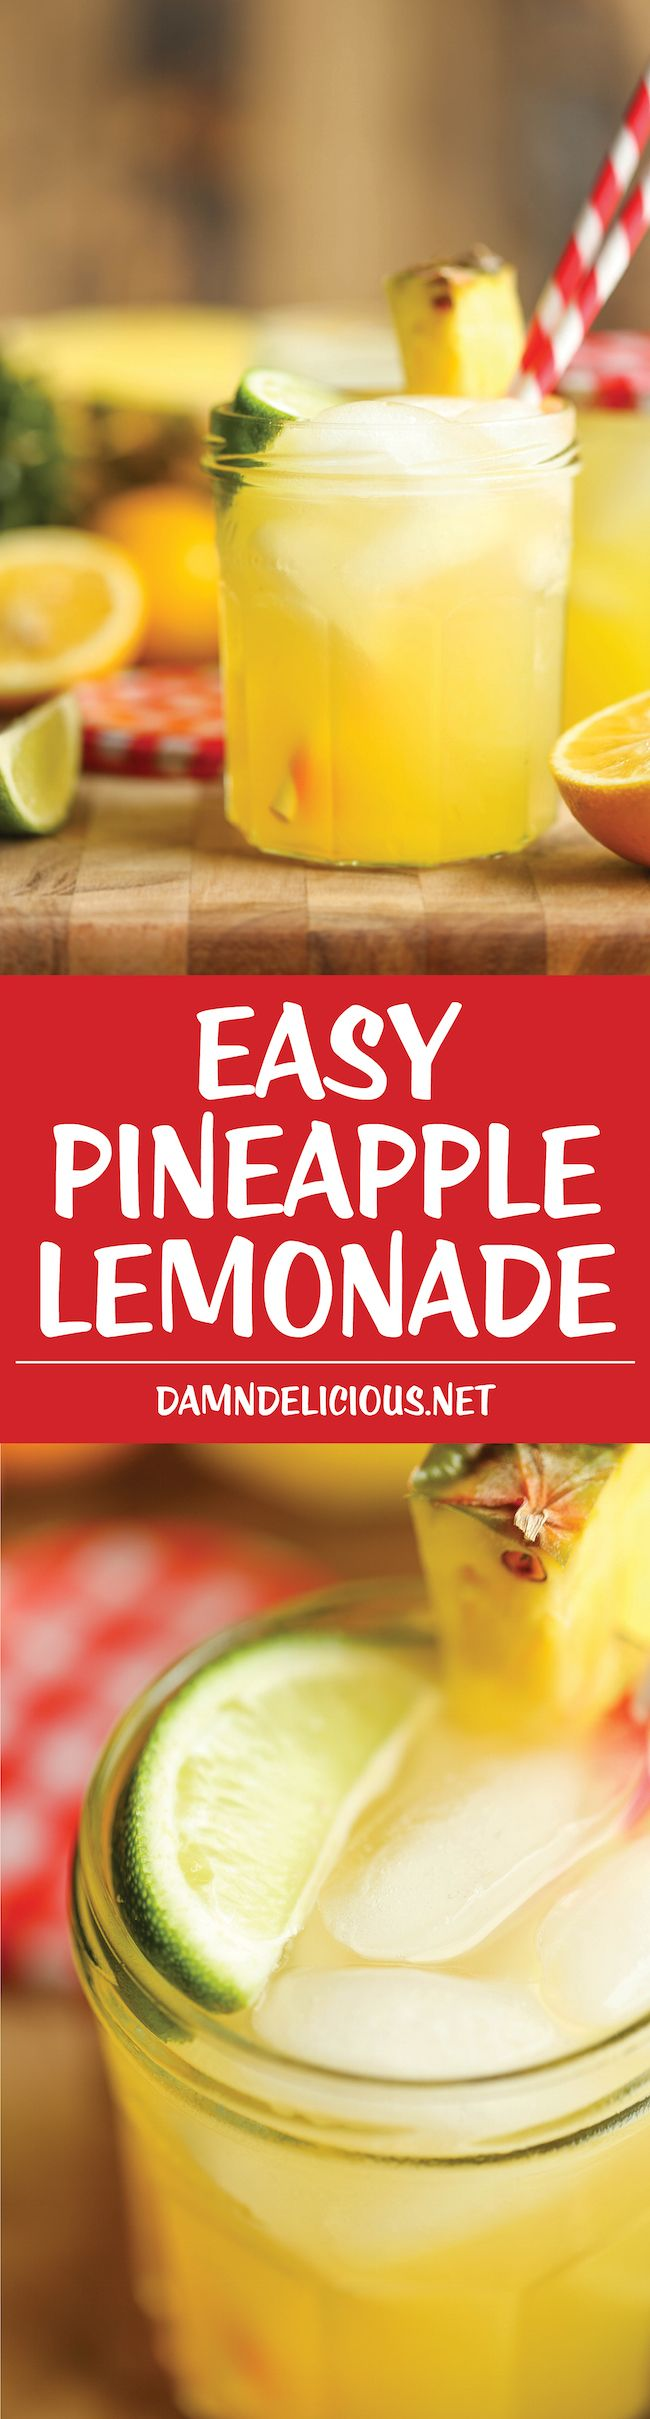 Pineapple Lemonade – So refreshing, so sweet, so tangy and just so wonderfully tropical. It's also unbelievably easy to whip up!